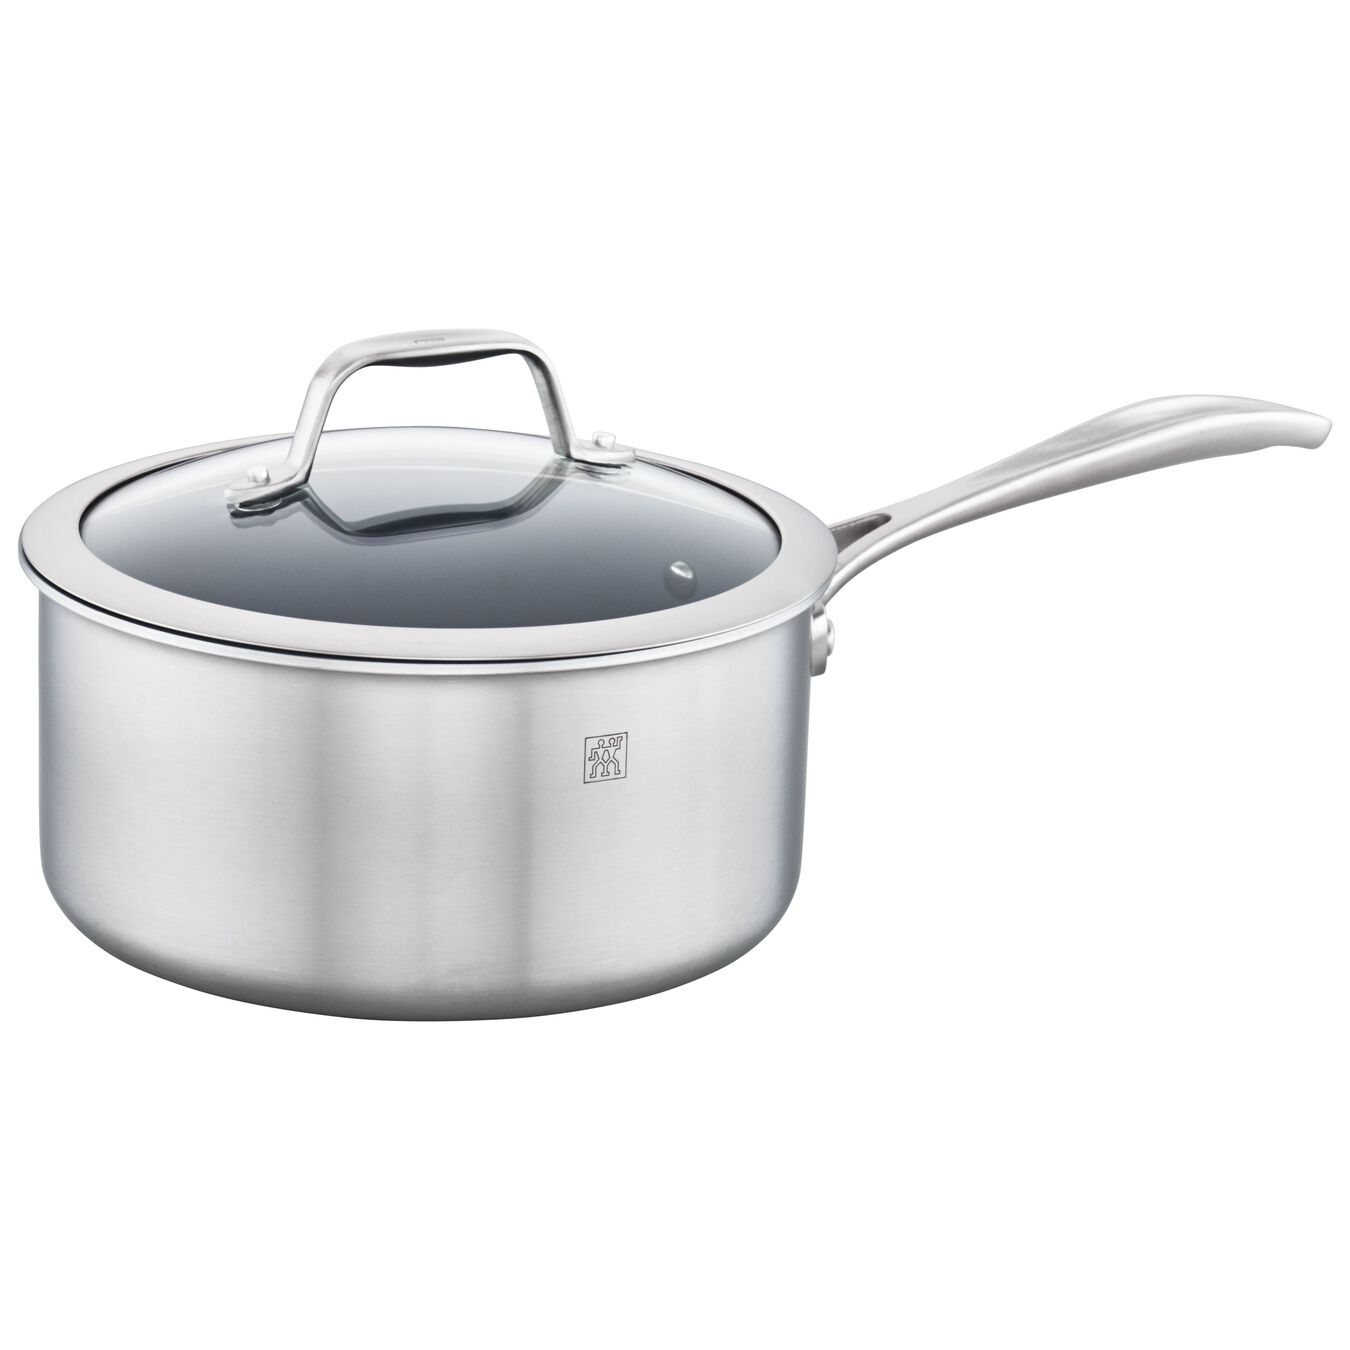 3-ply 3-qt Stainless Steel Ceramic Nonstick Saucepan,,large 2